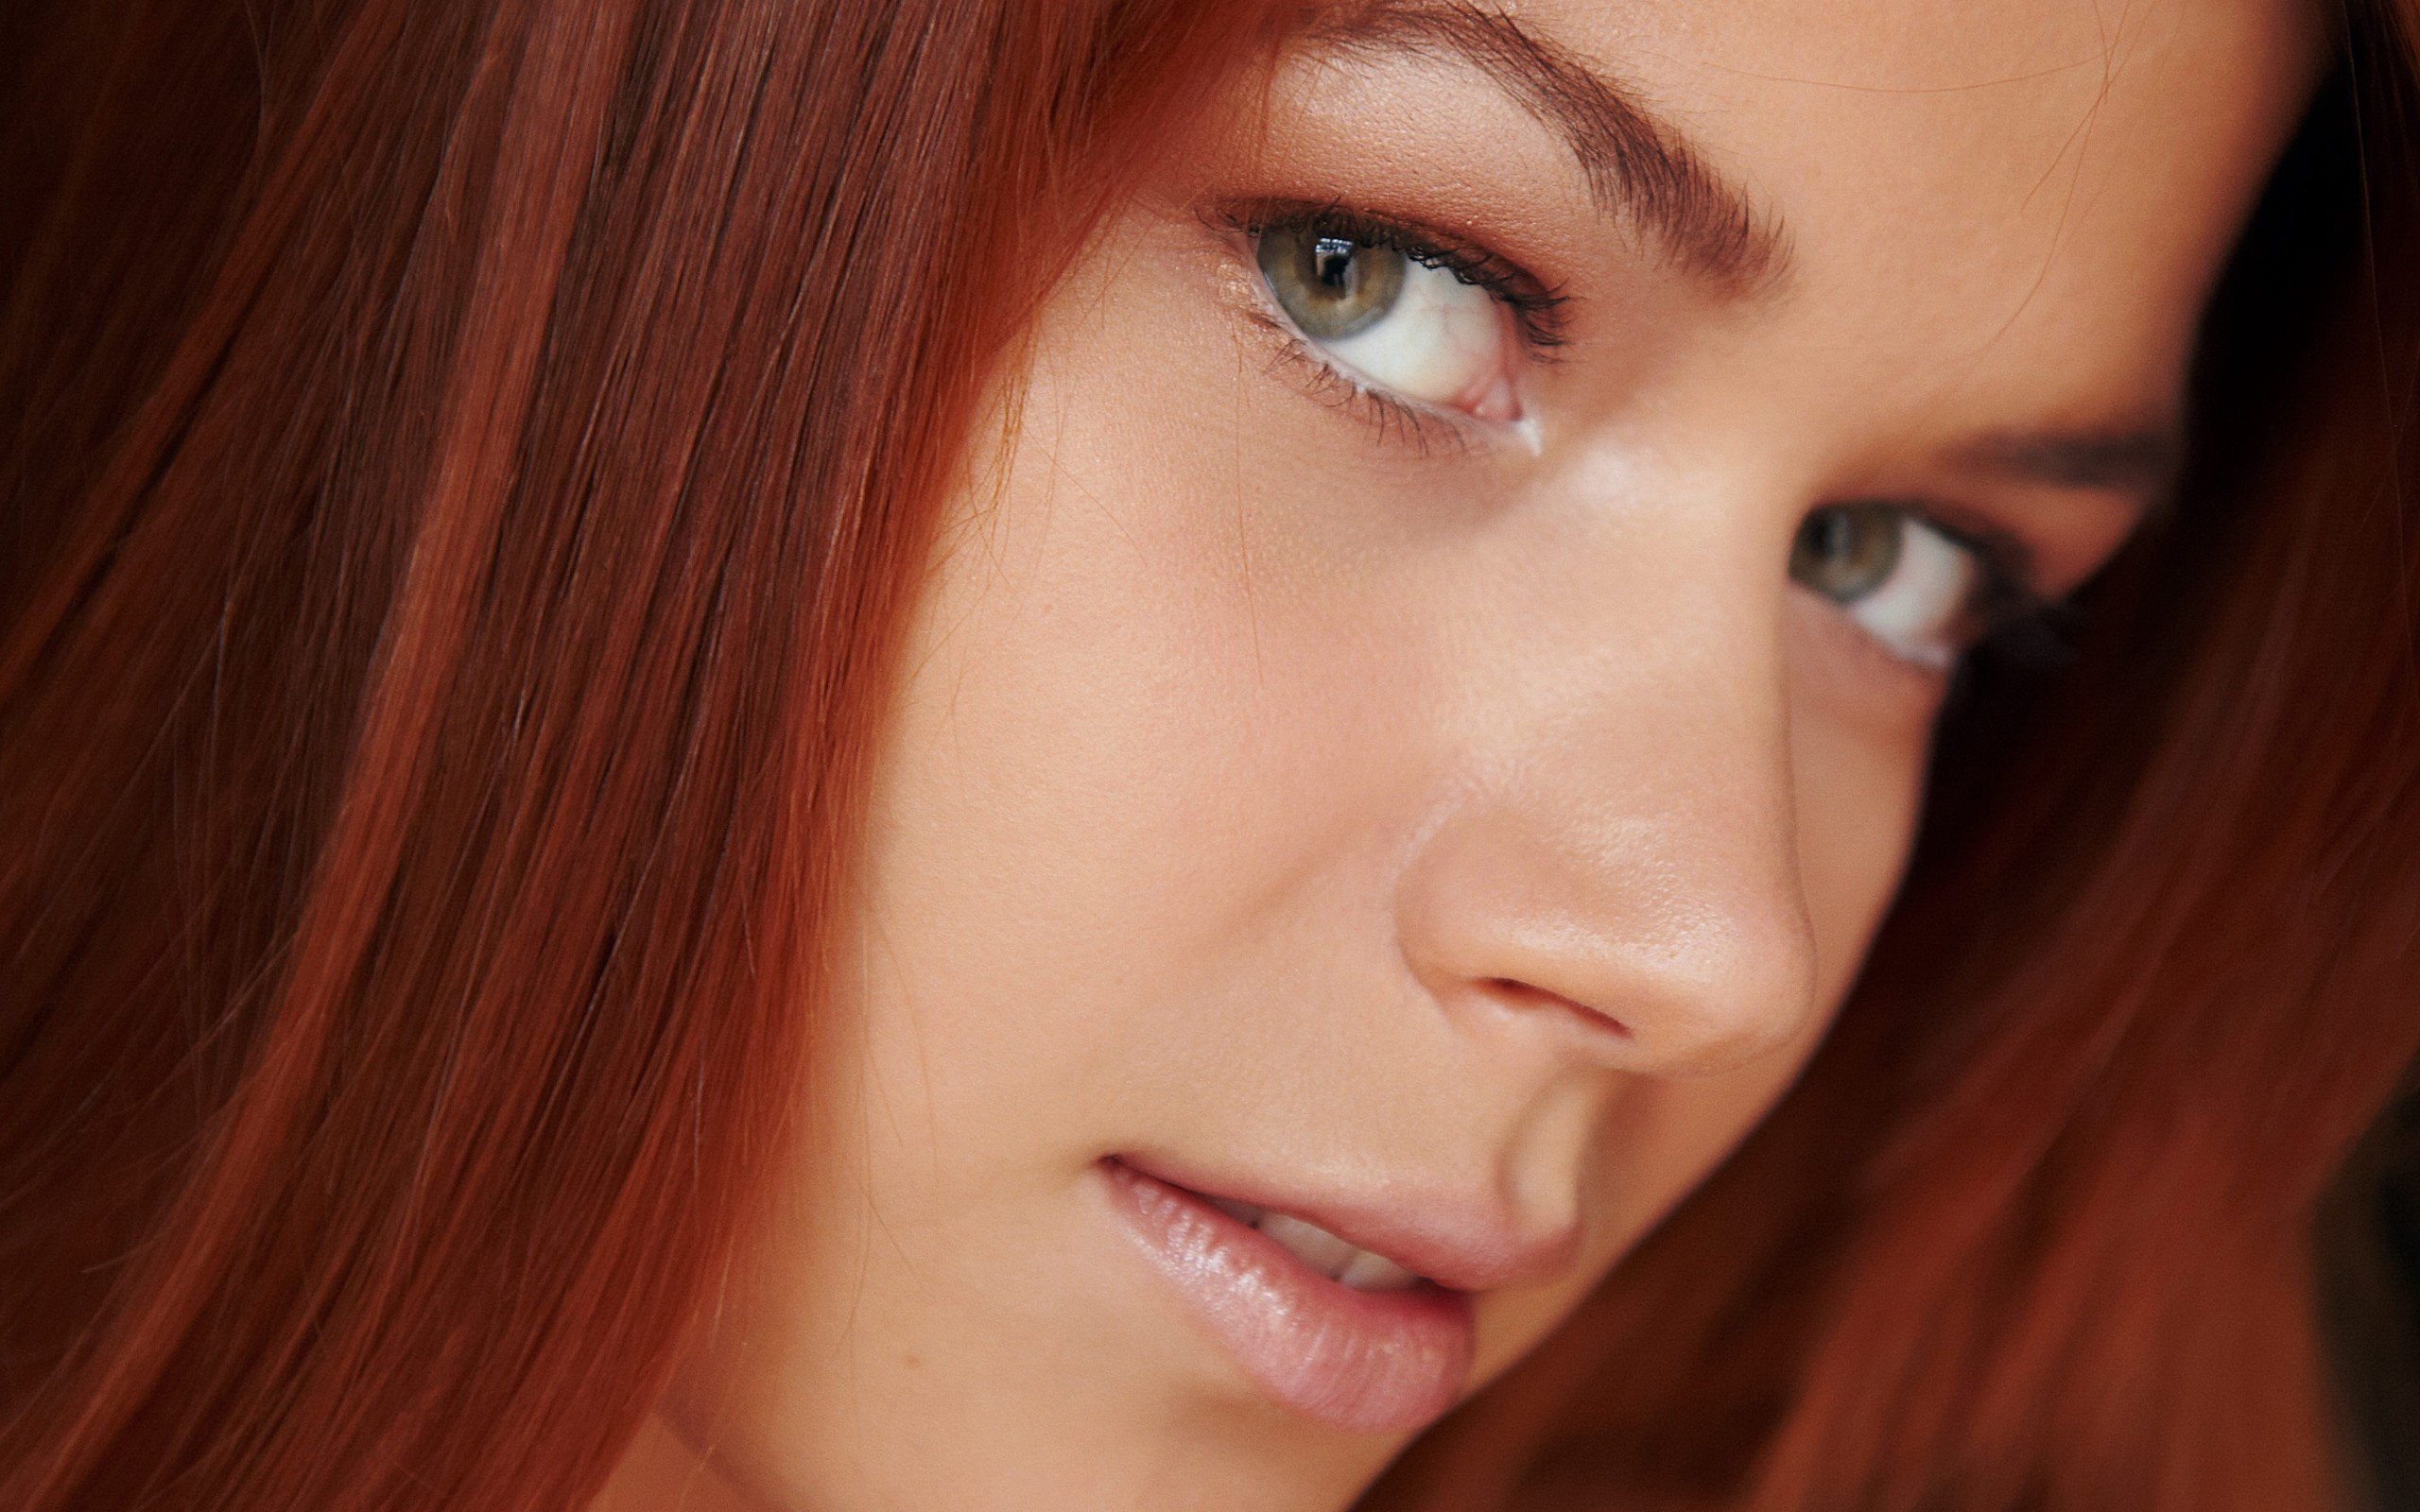 woman close-up eyes redheads